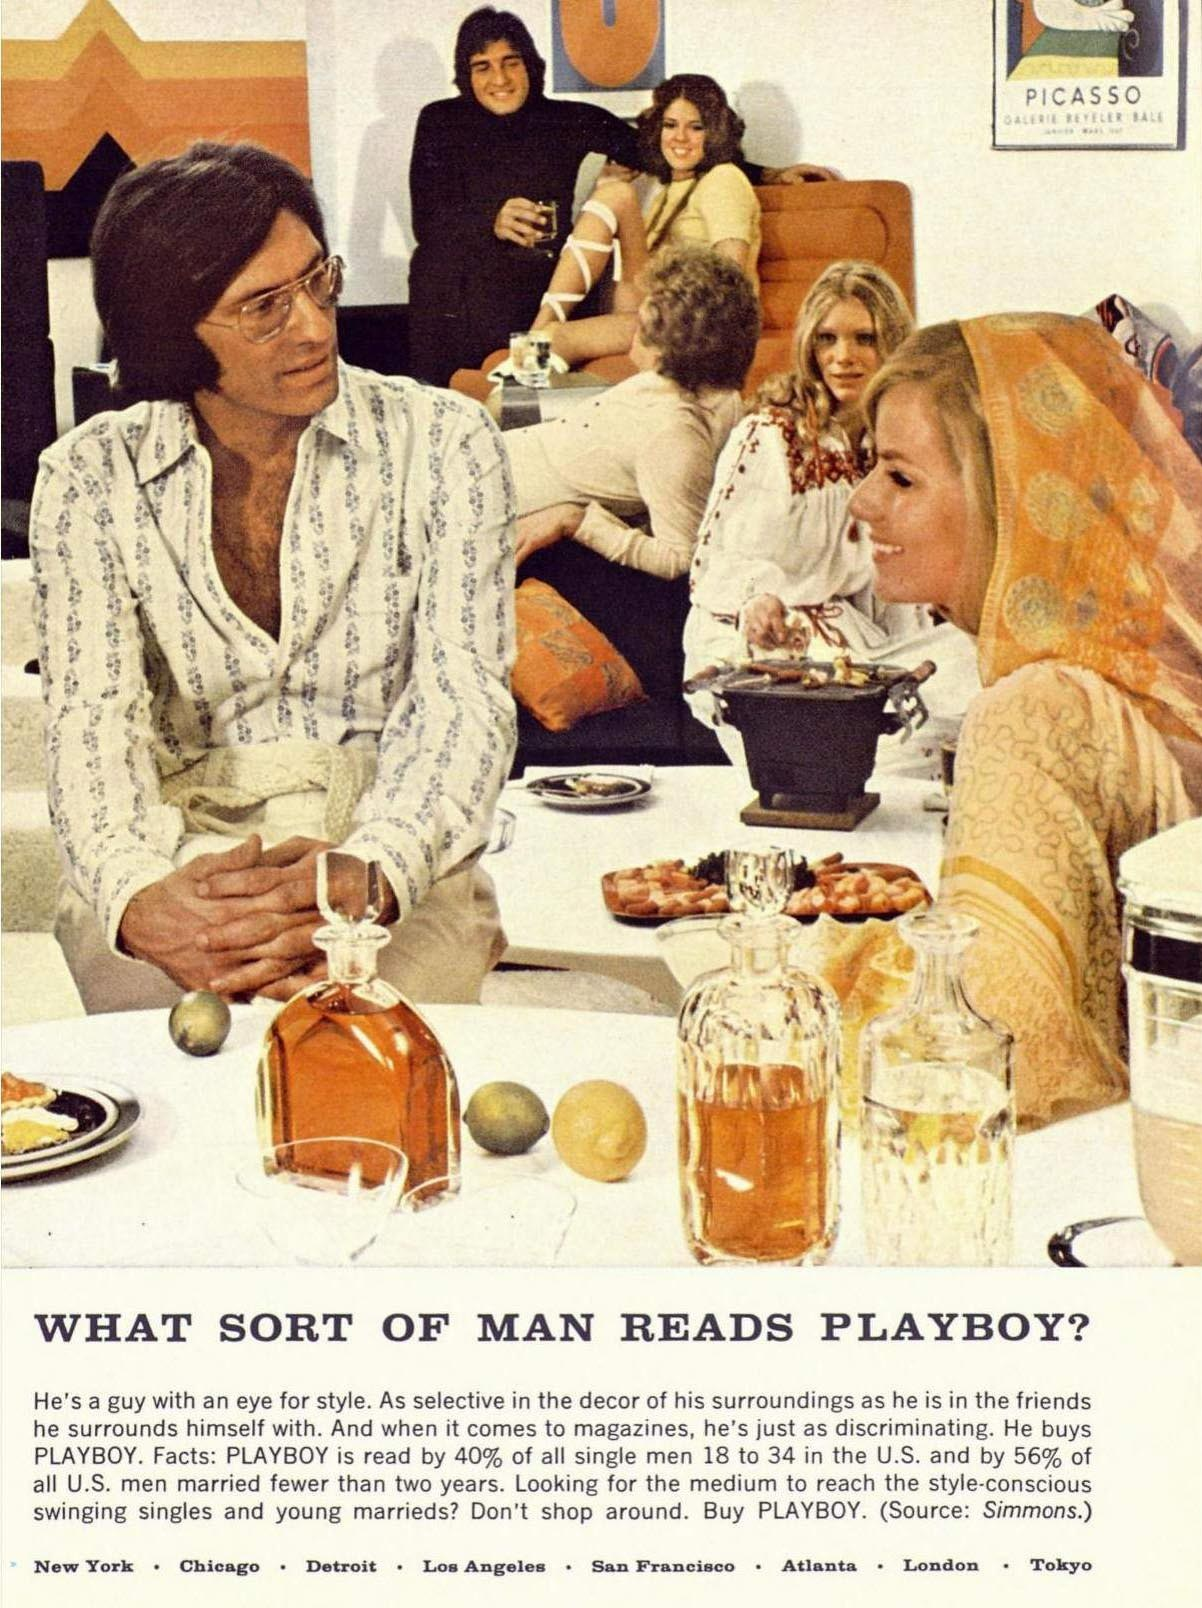 What sort of man reads Playboy 4